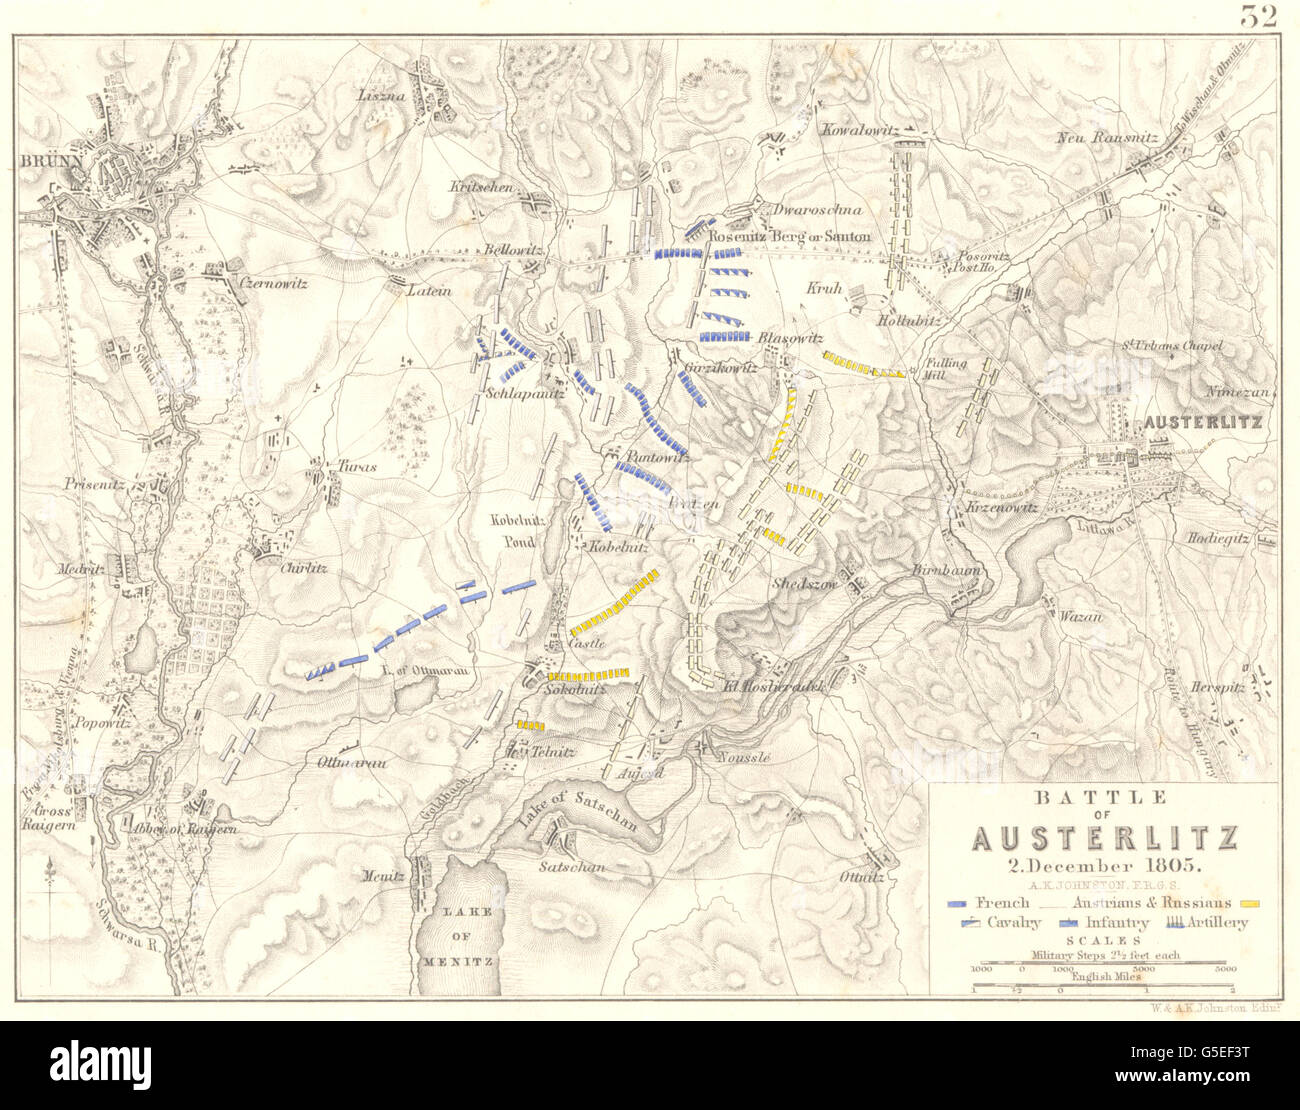 BATTLE OF AUSTERLITZ: Slavkov u Brna. December 1806. Czech Republic, 1848 map - Stock Image